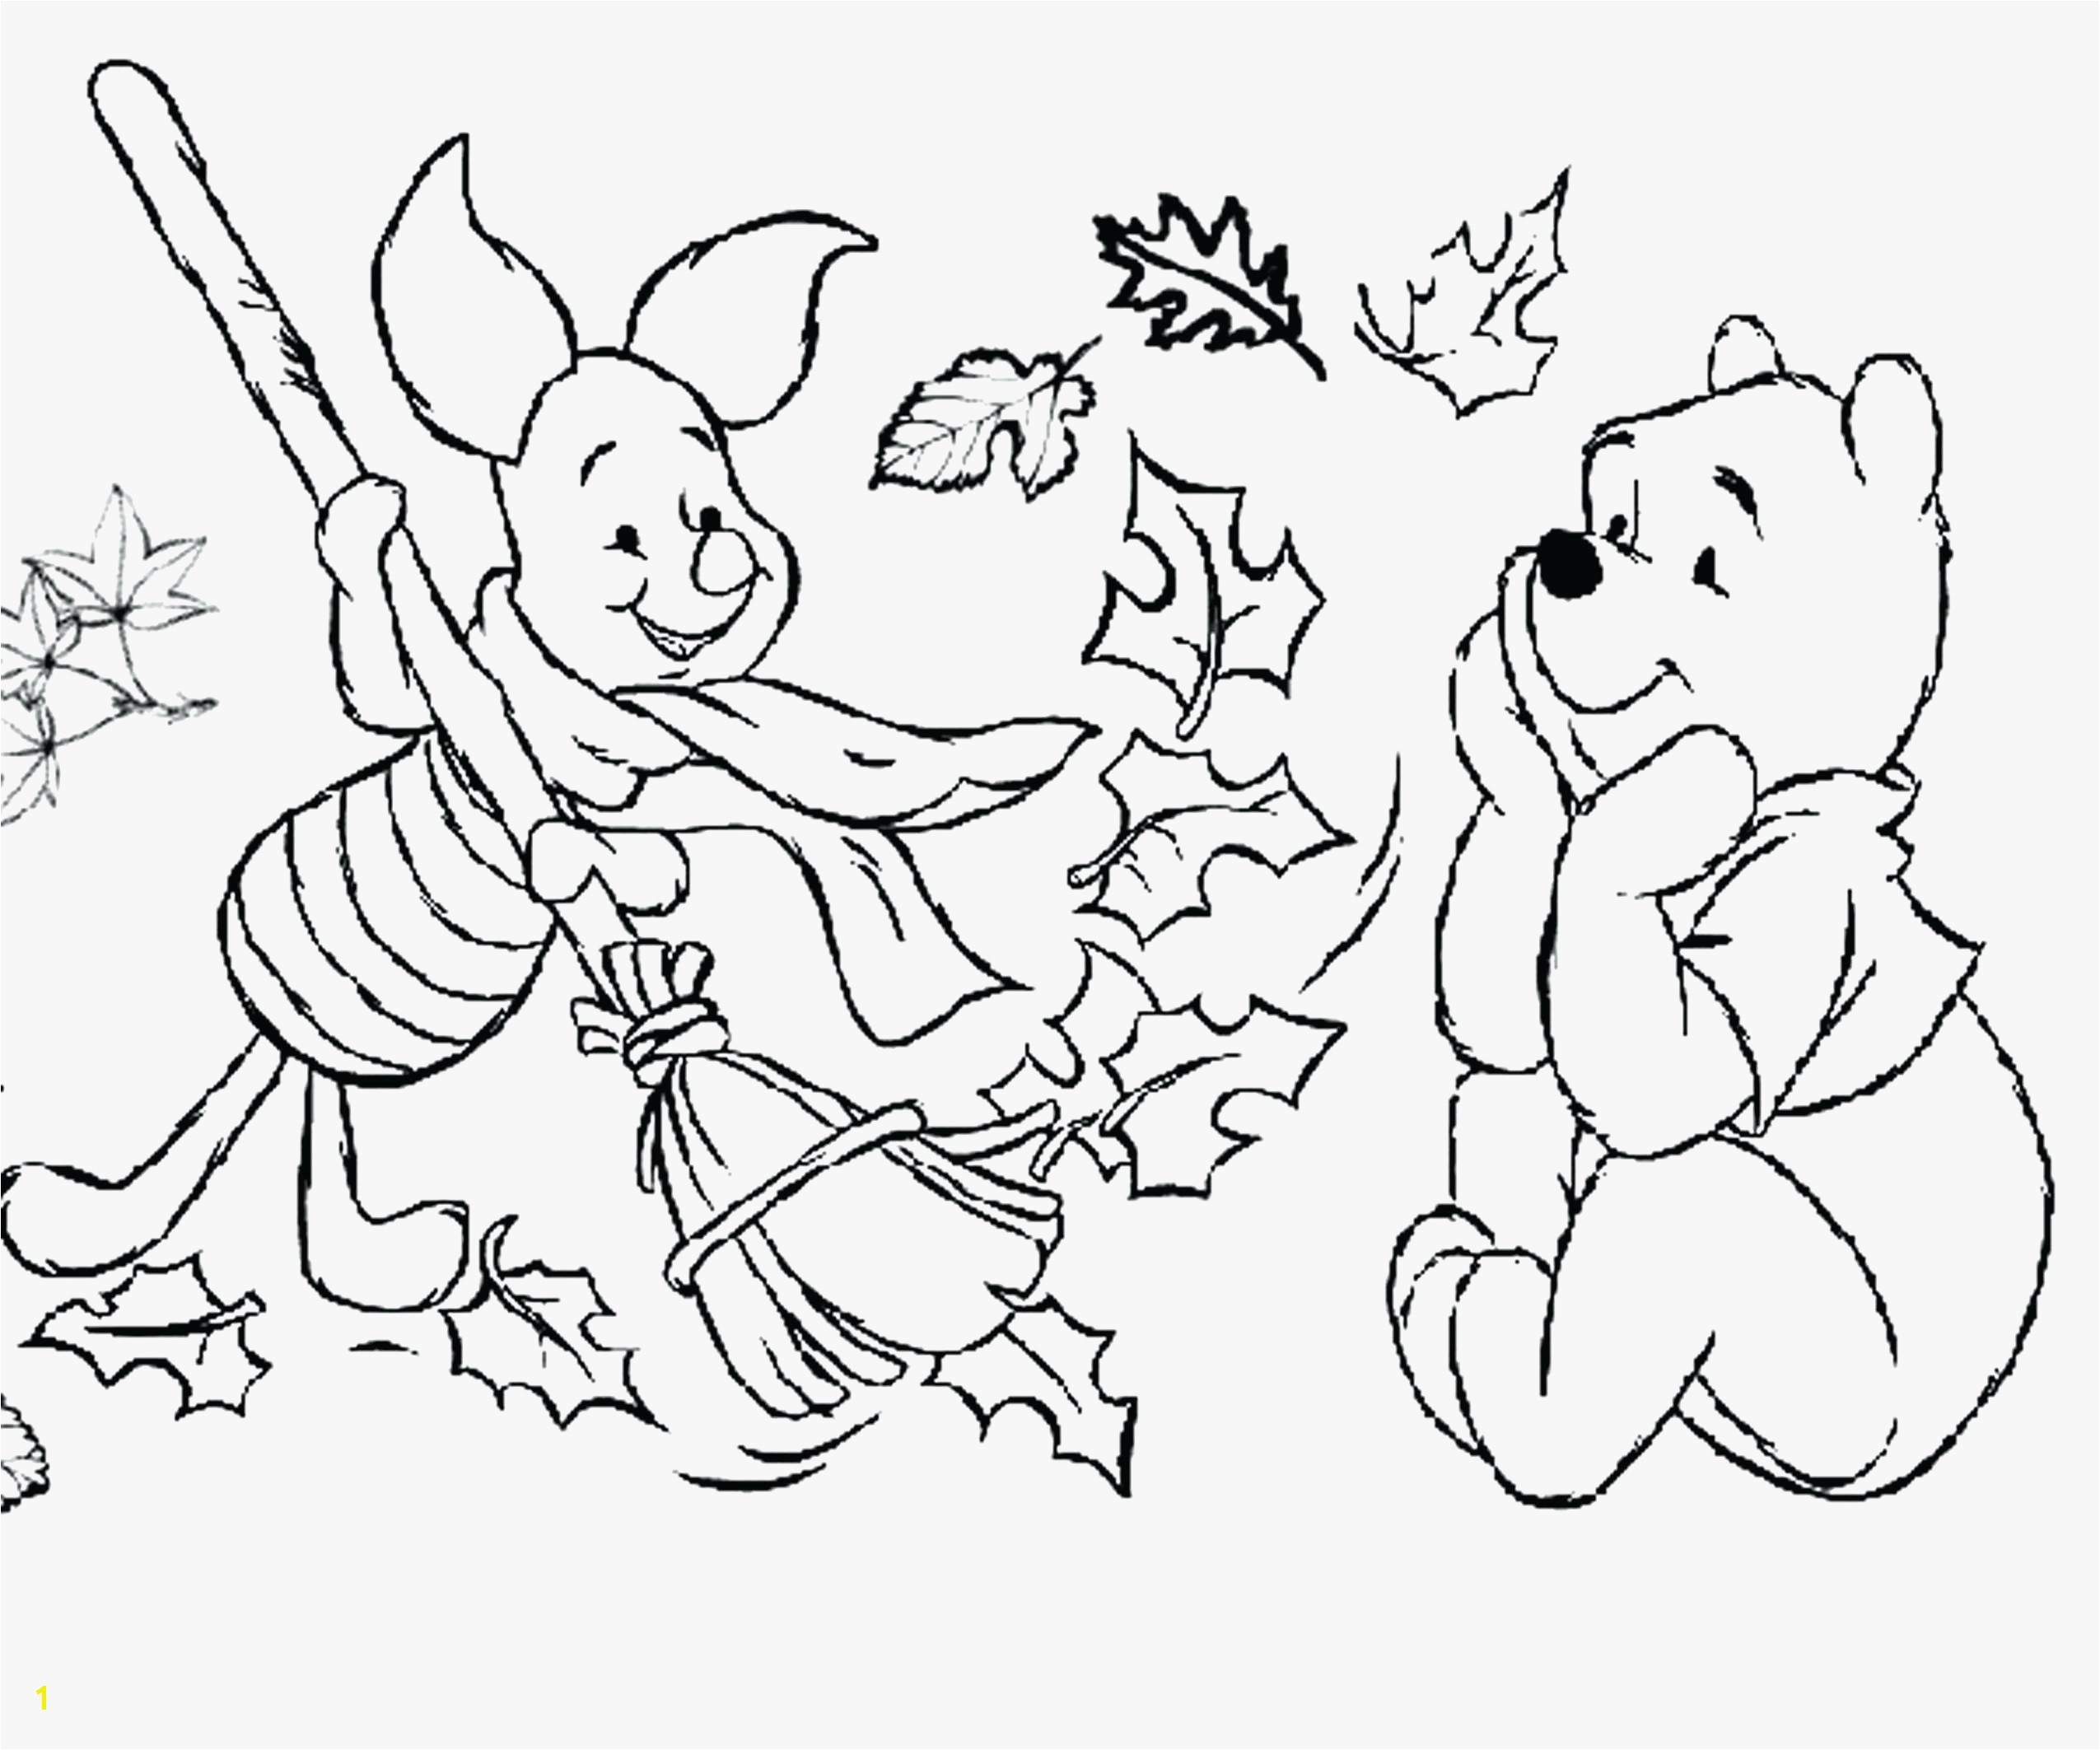 Little Kid Coloring Pages Batman Coloring Pages Games New Fall Coloring Pages 0d Page for Kids